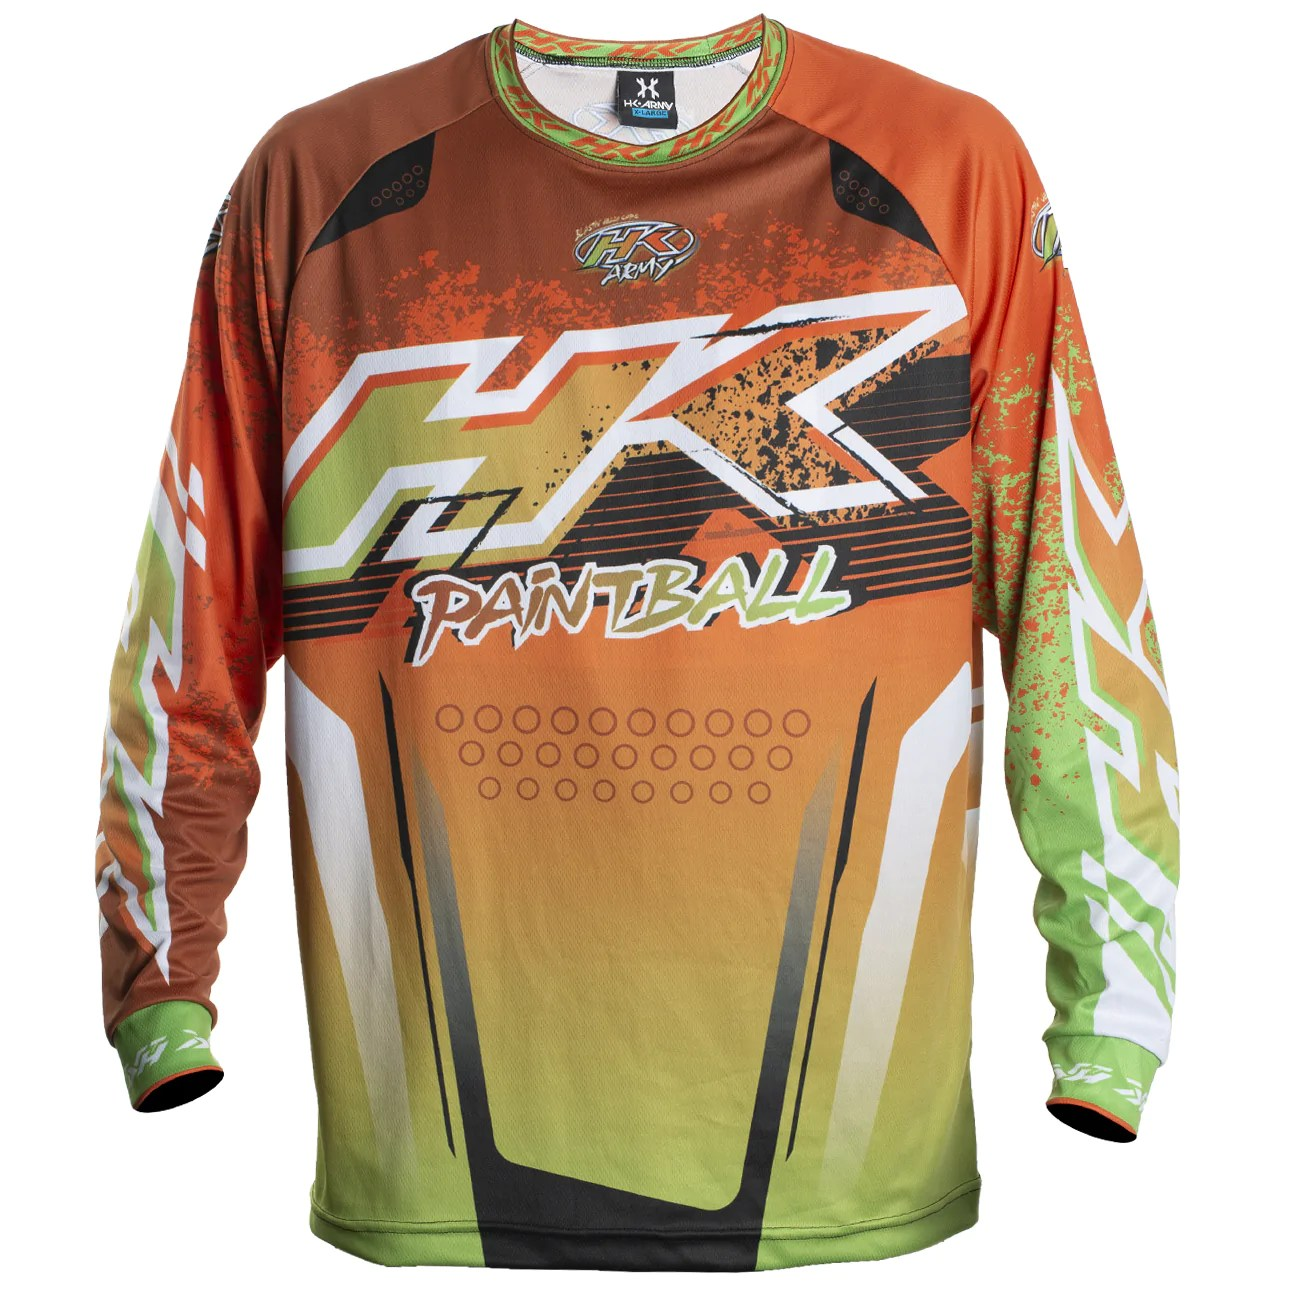 Retro Jerseys Liquid Orange Lime Retro Jersey